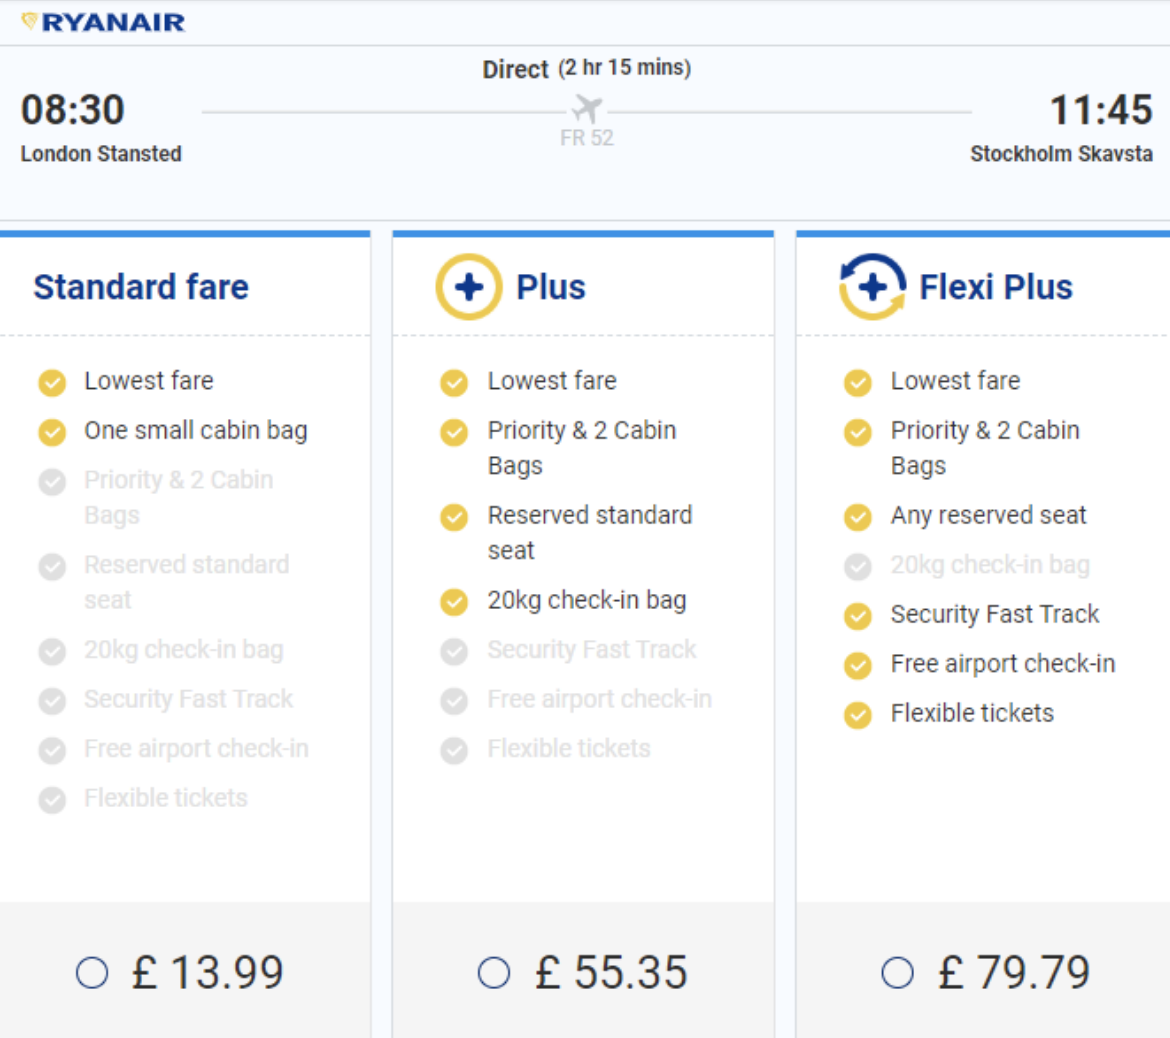 Is Flying Ryanair That Bad Fr 52 Flight Review London Stansted